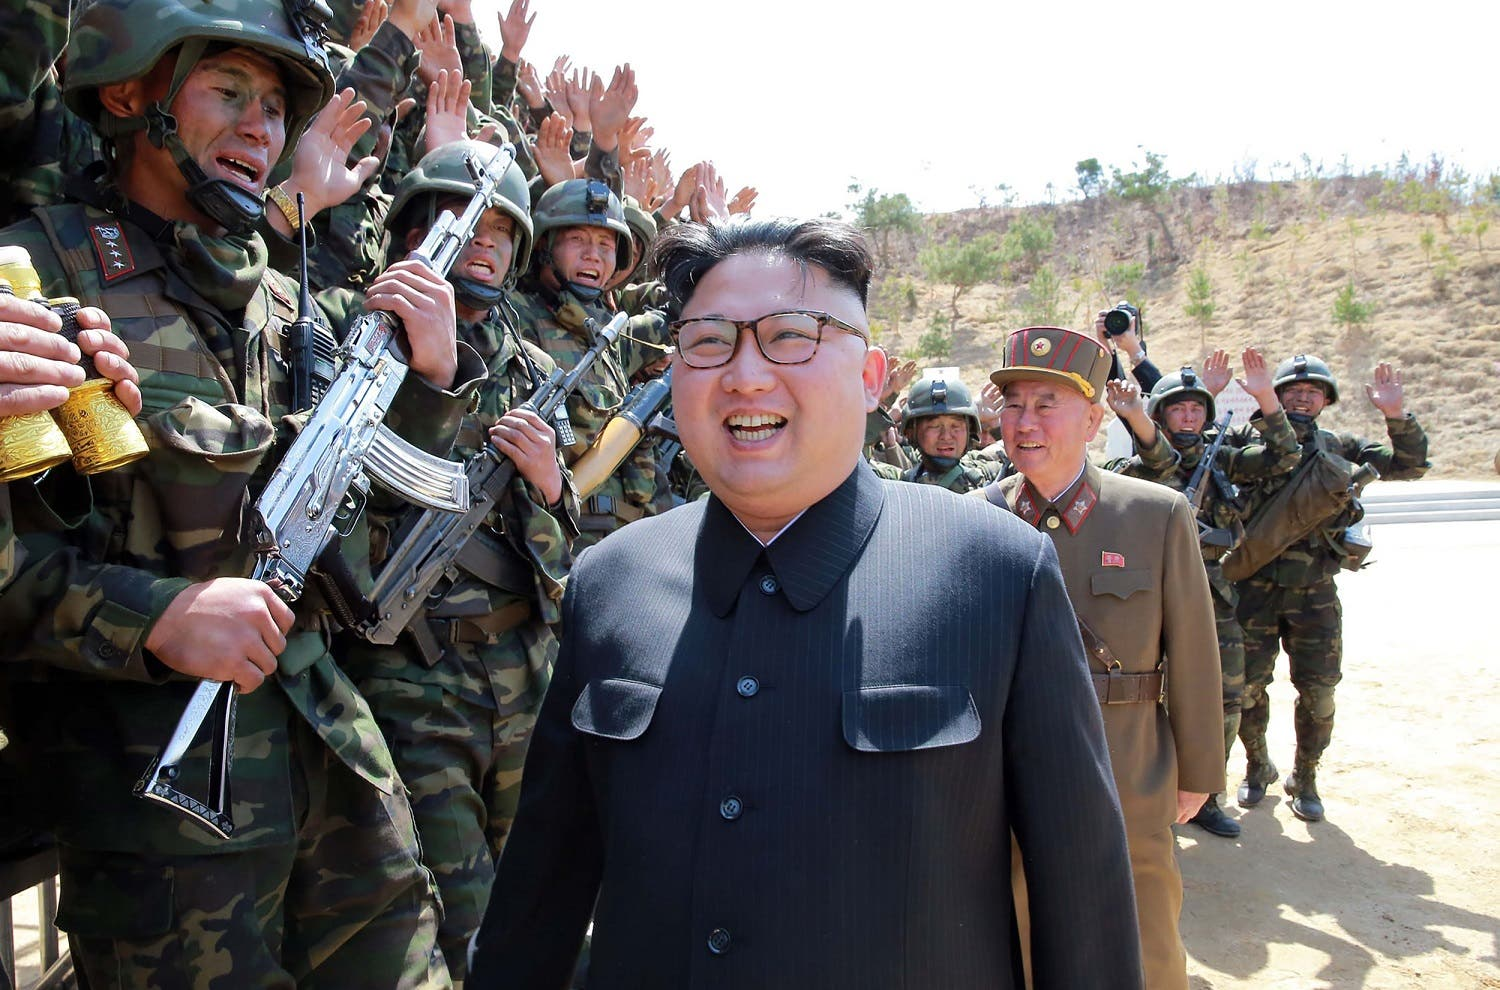 """Kim Jong-Un inspecting the """"Dropping and Target-striking Contest of KPA Special Operation Forces – 2017"""" at an undisclosed location in North Korea on April 14, 2017. (AFP)"""